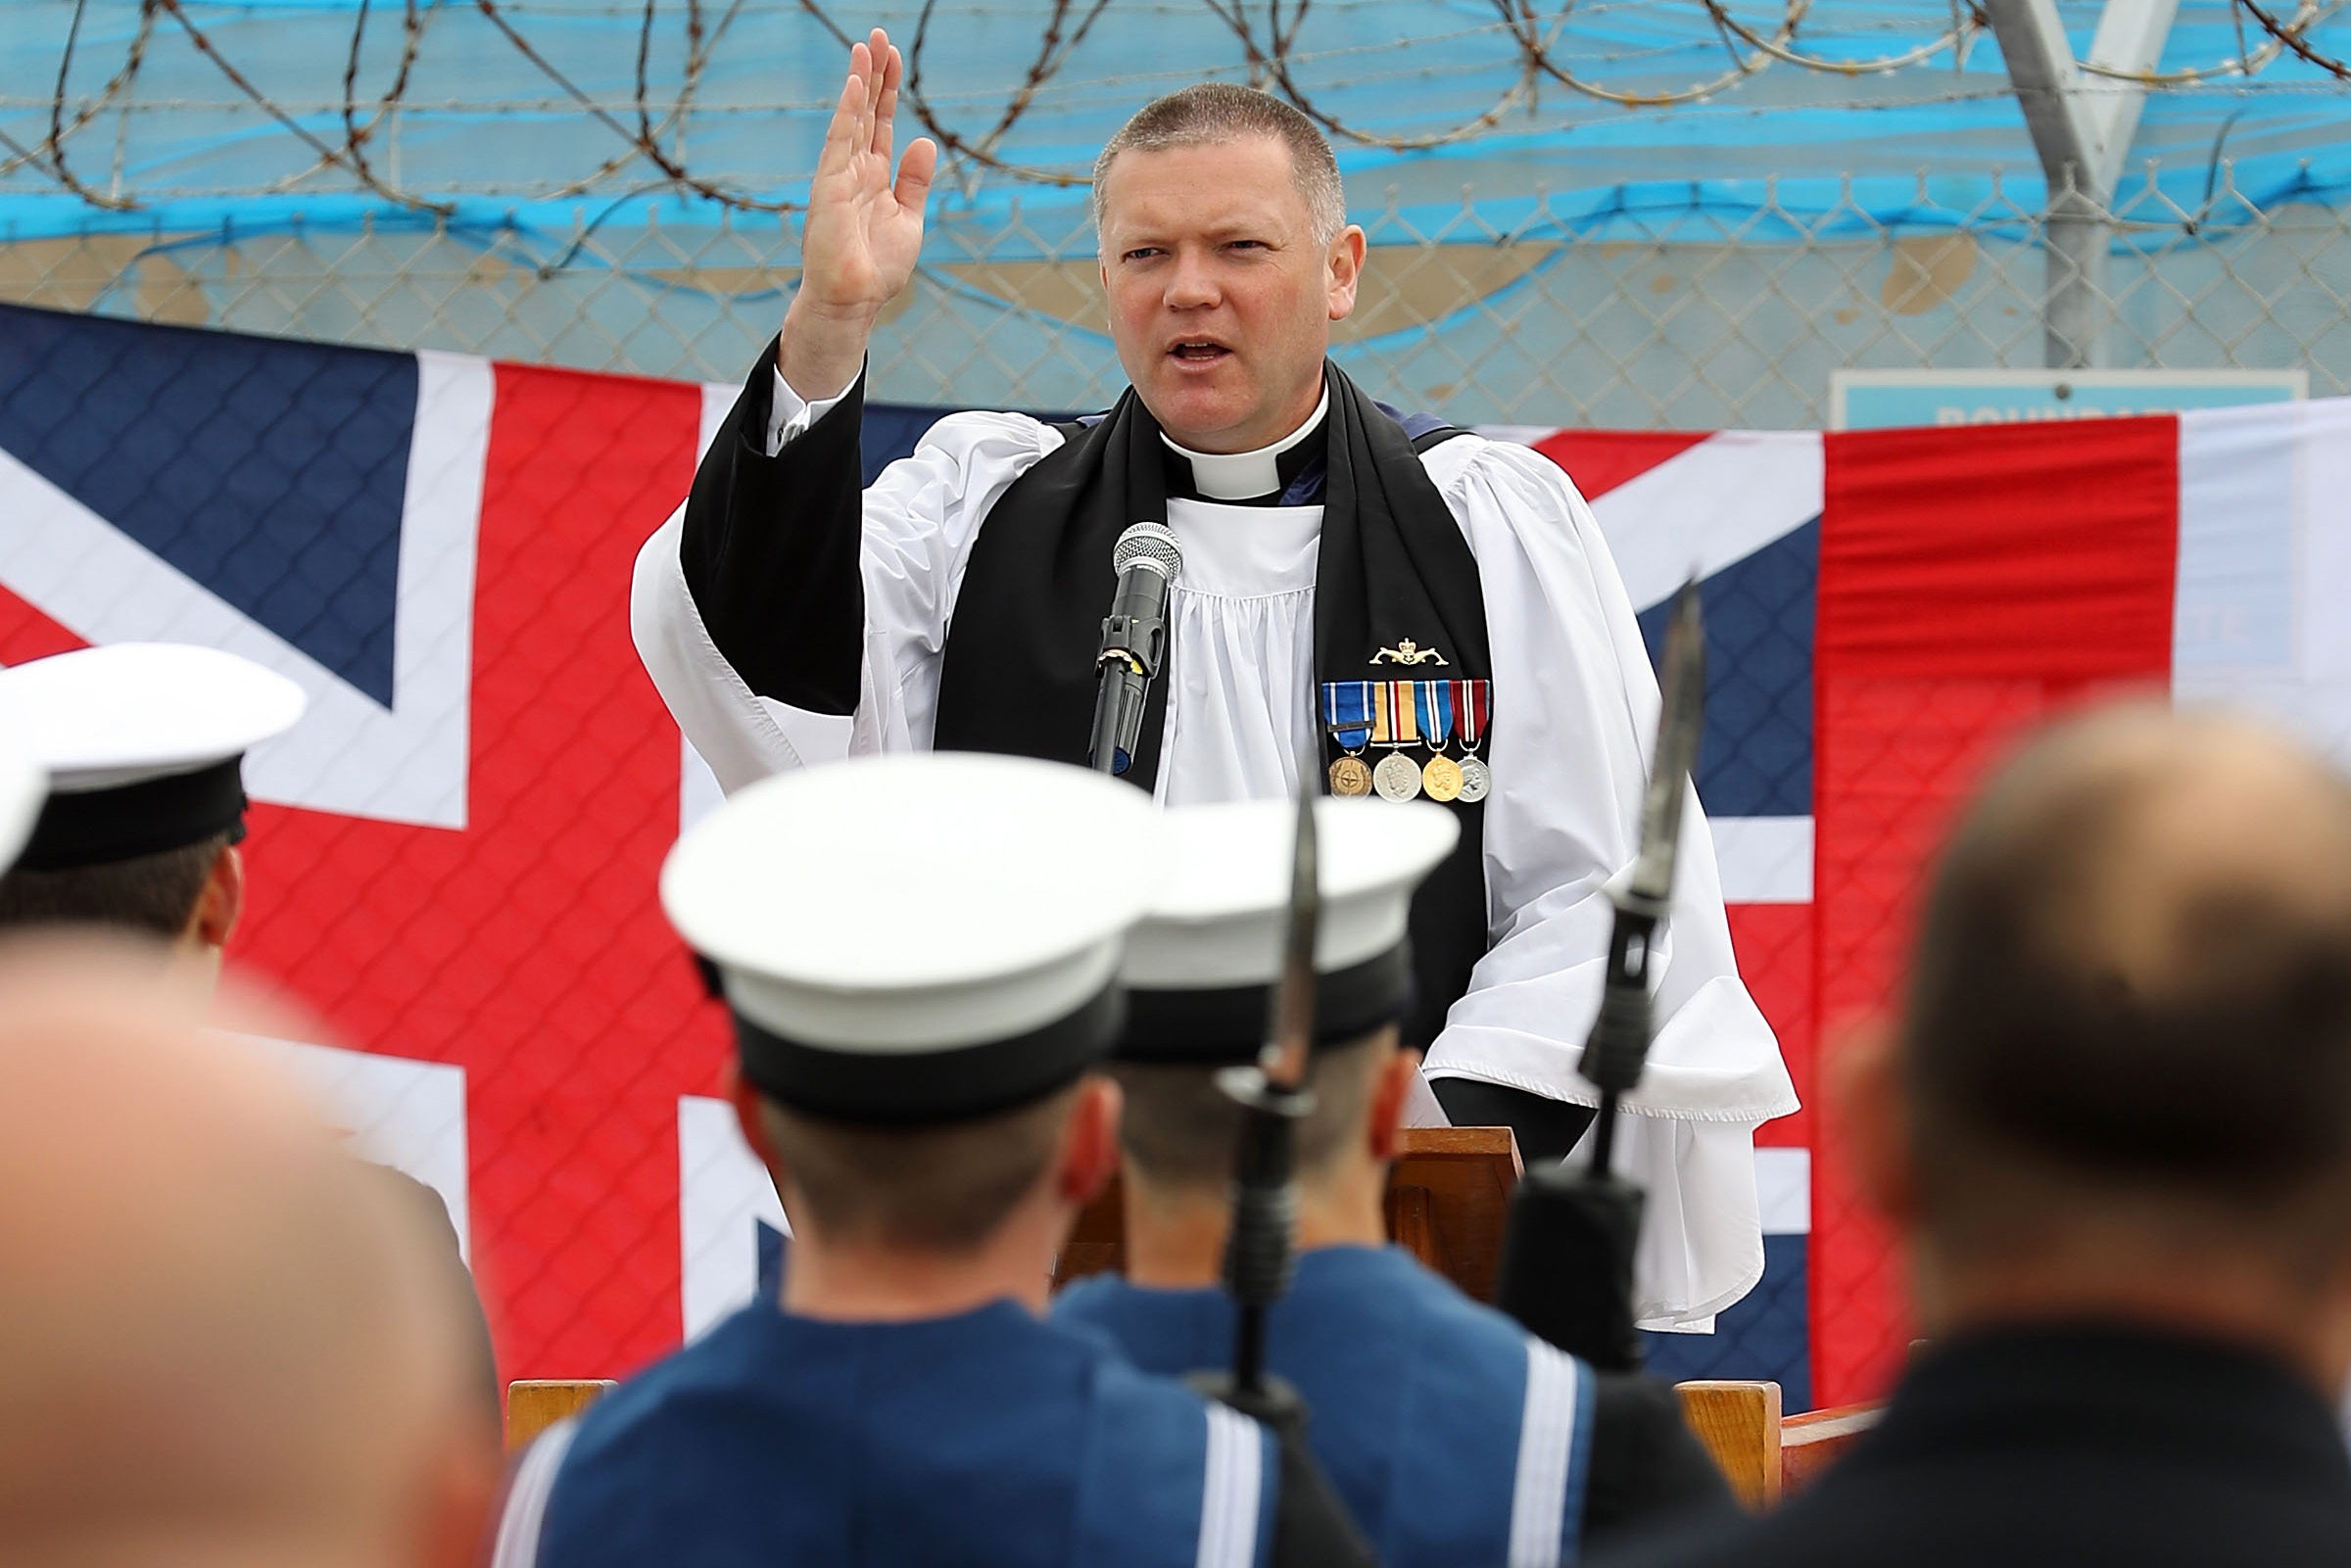 Submariners celebrate HMS Torbay's proud service